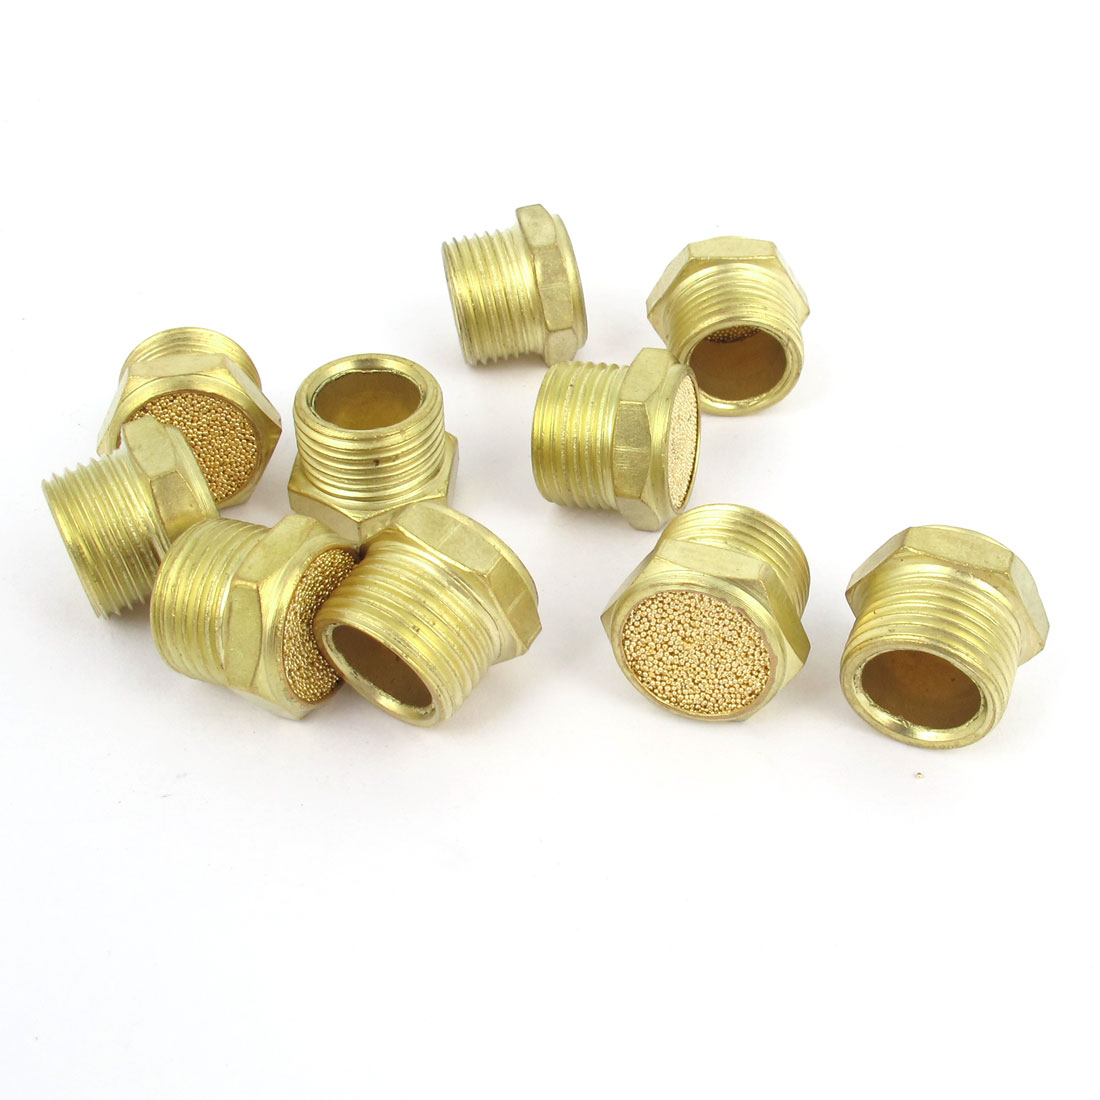 10 Pcs Flat Pneumatic Noise Muffler Filter Sintered Gold Tone 3/8PT Male Thread